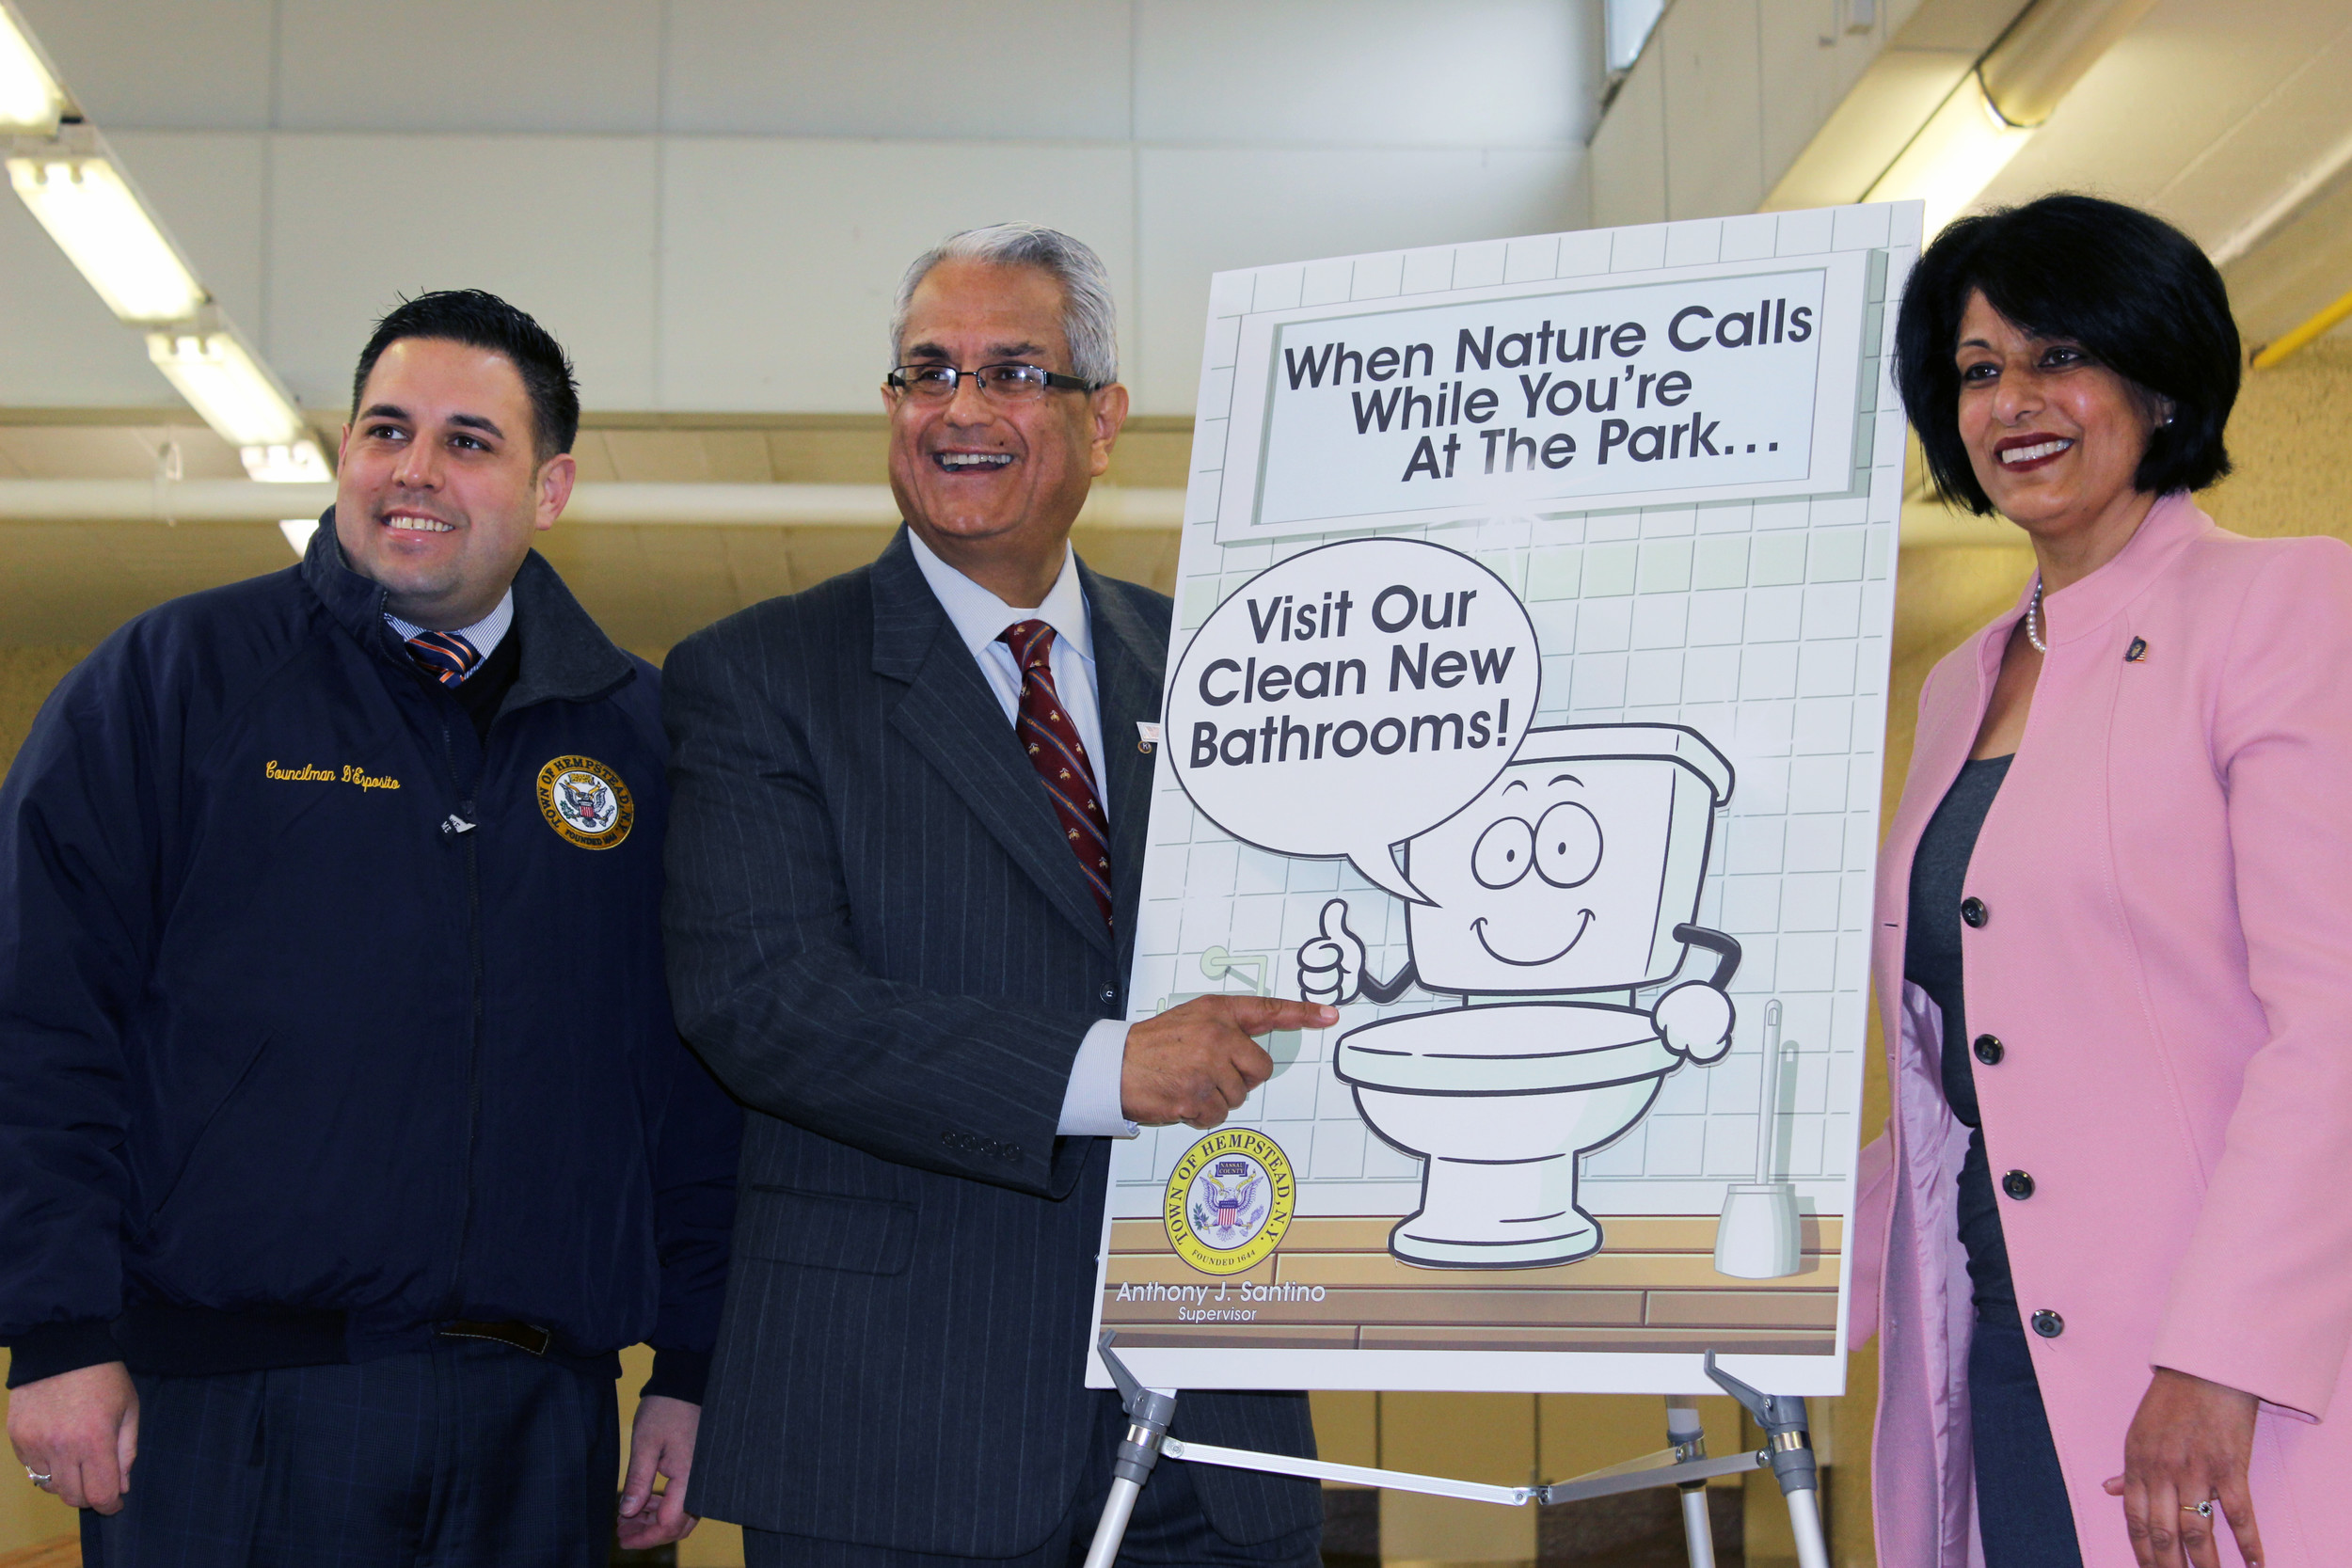 Councilman Anthony D'Esposito, left, Town of Hempstead Supervisor Anthony J. Santino, and Town Clerk Nasrin Ahmad unveiled a new sign to announce the restoration of multiple town recreation facilities.